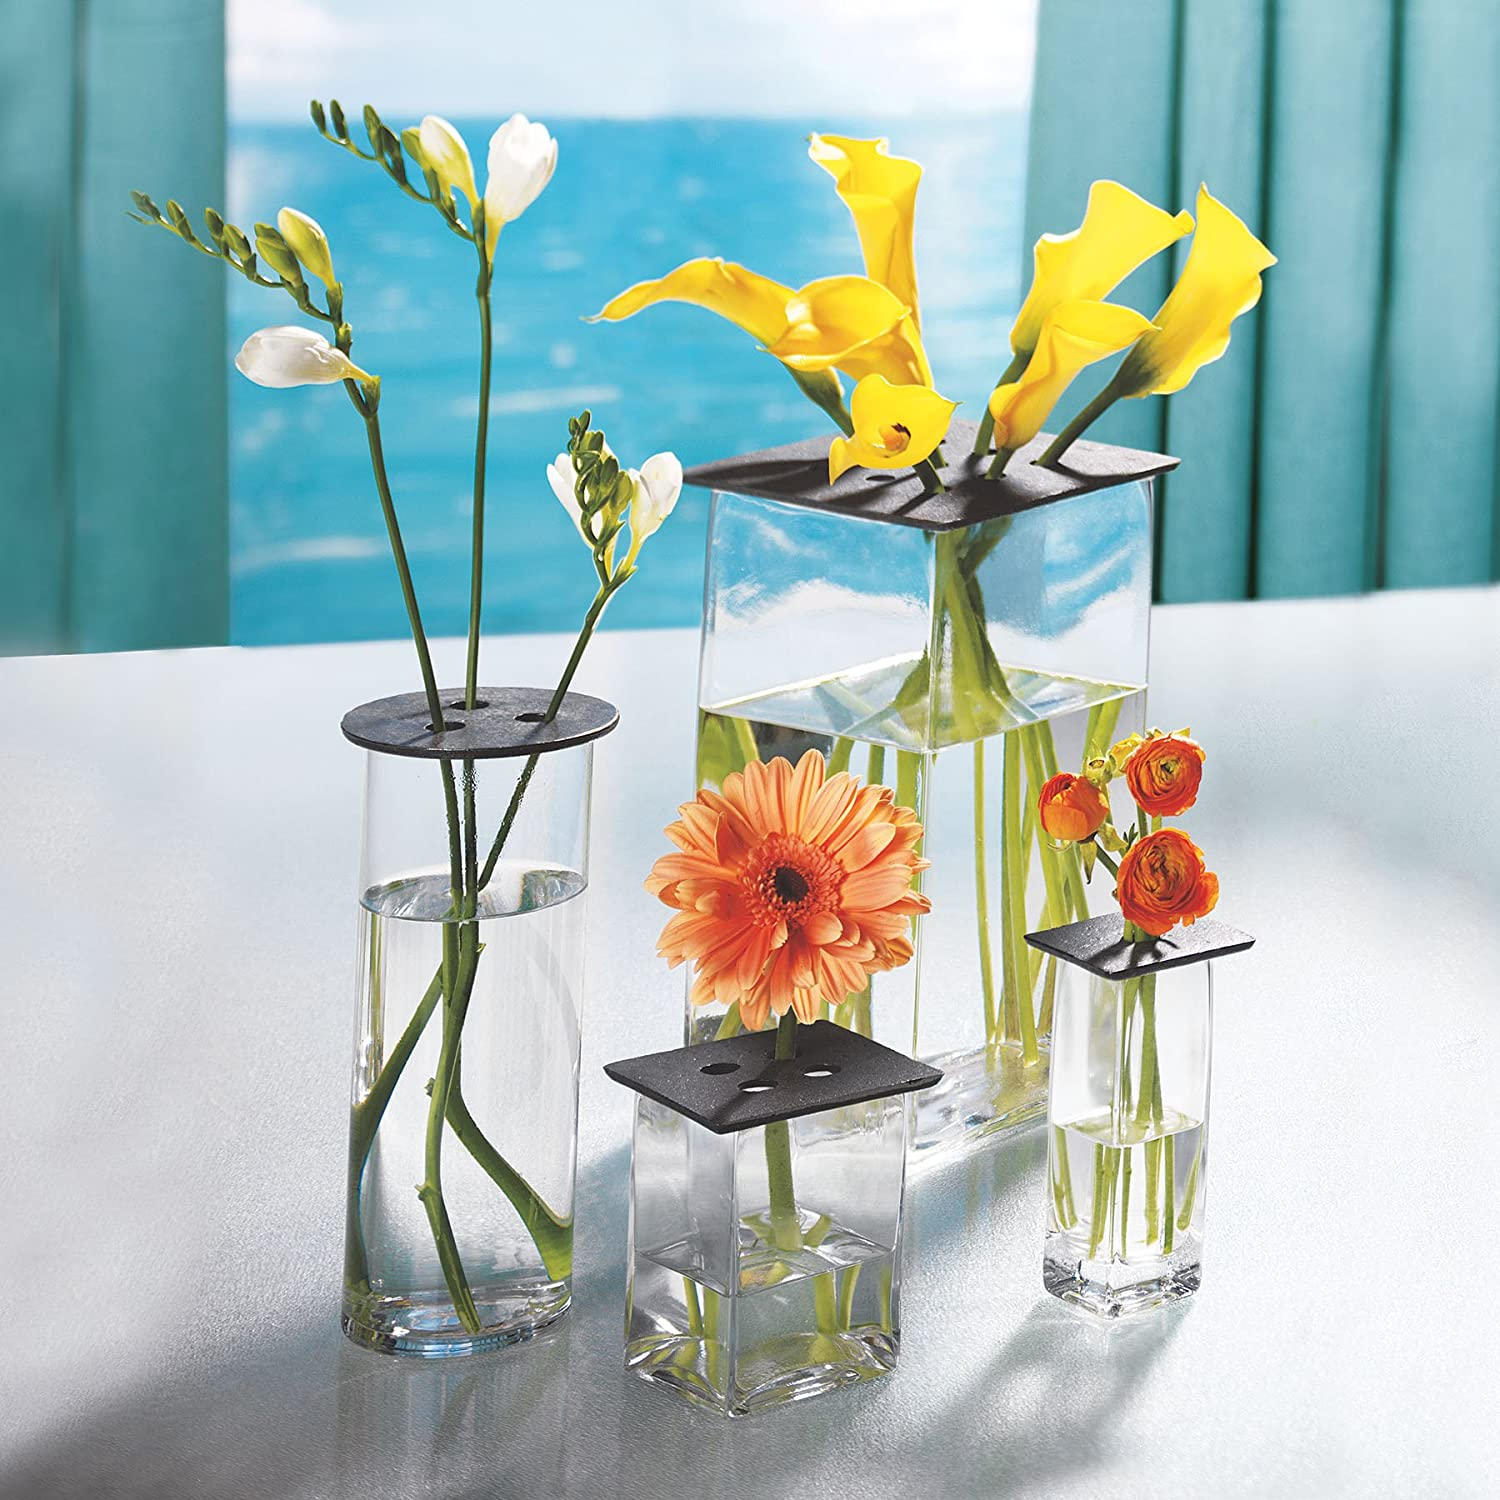 Skalny Square Glass Vase with Cast Iron Lid 2 x 2 x 6.25